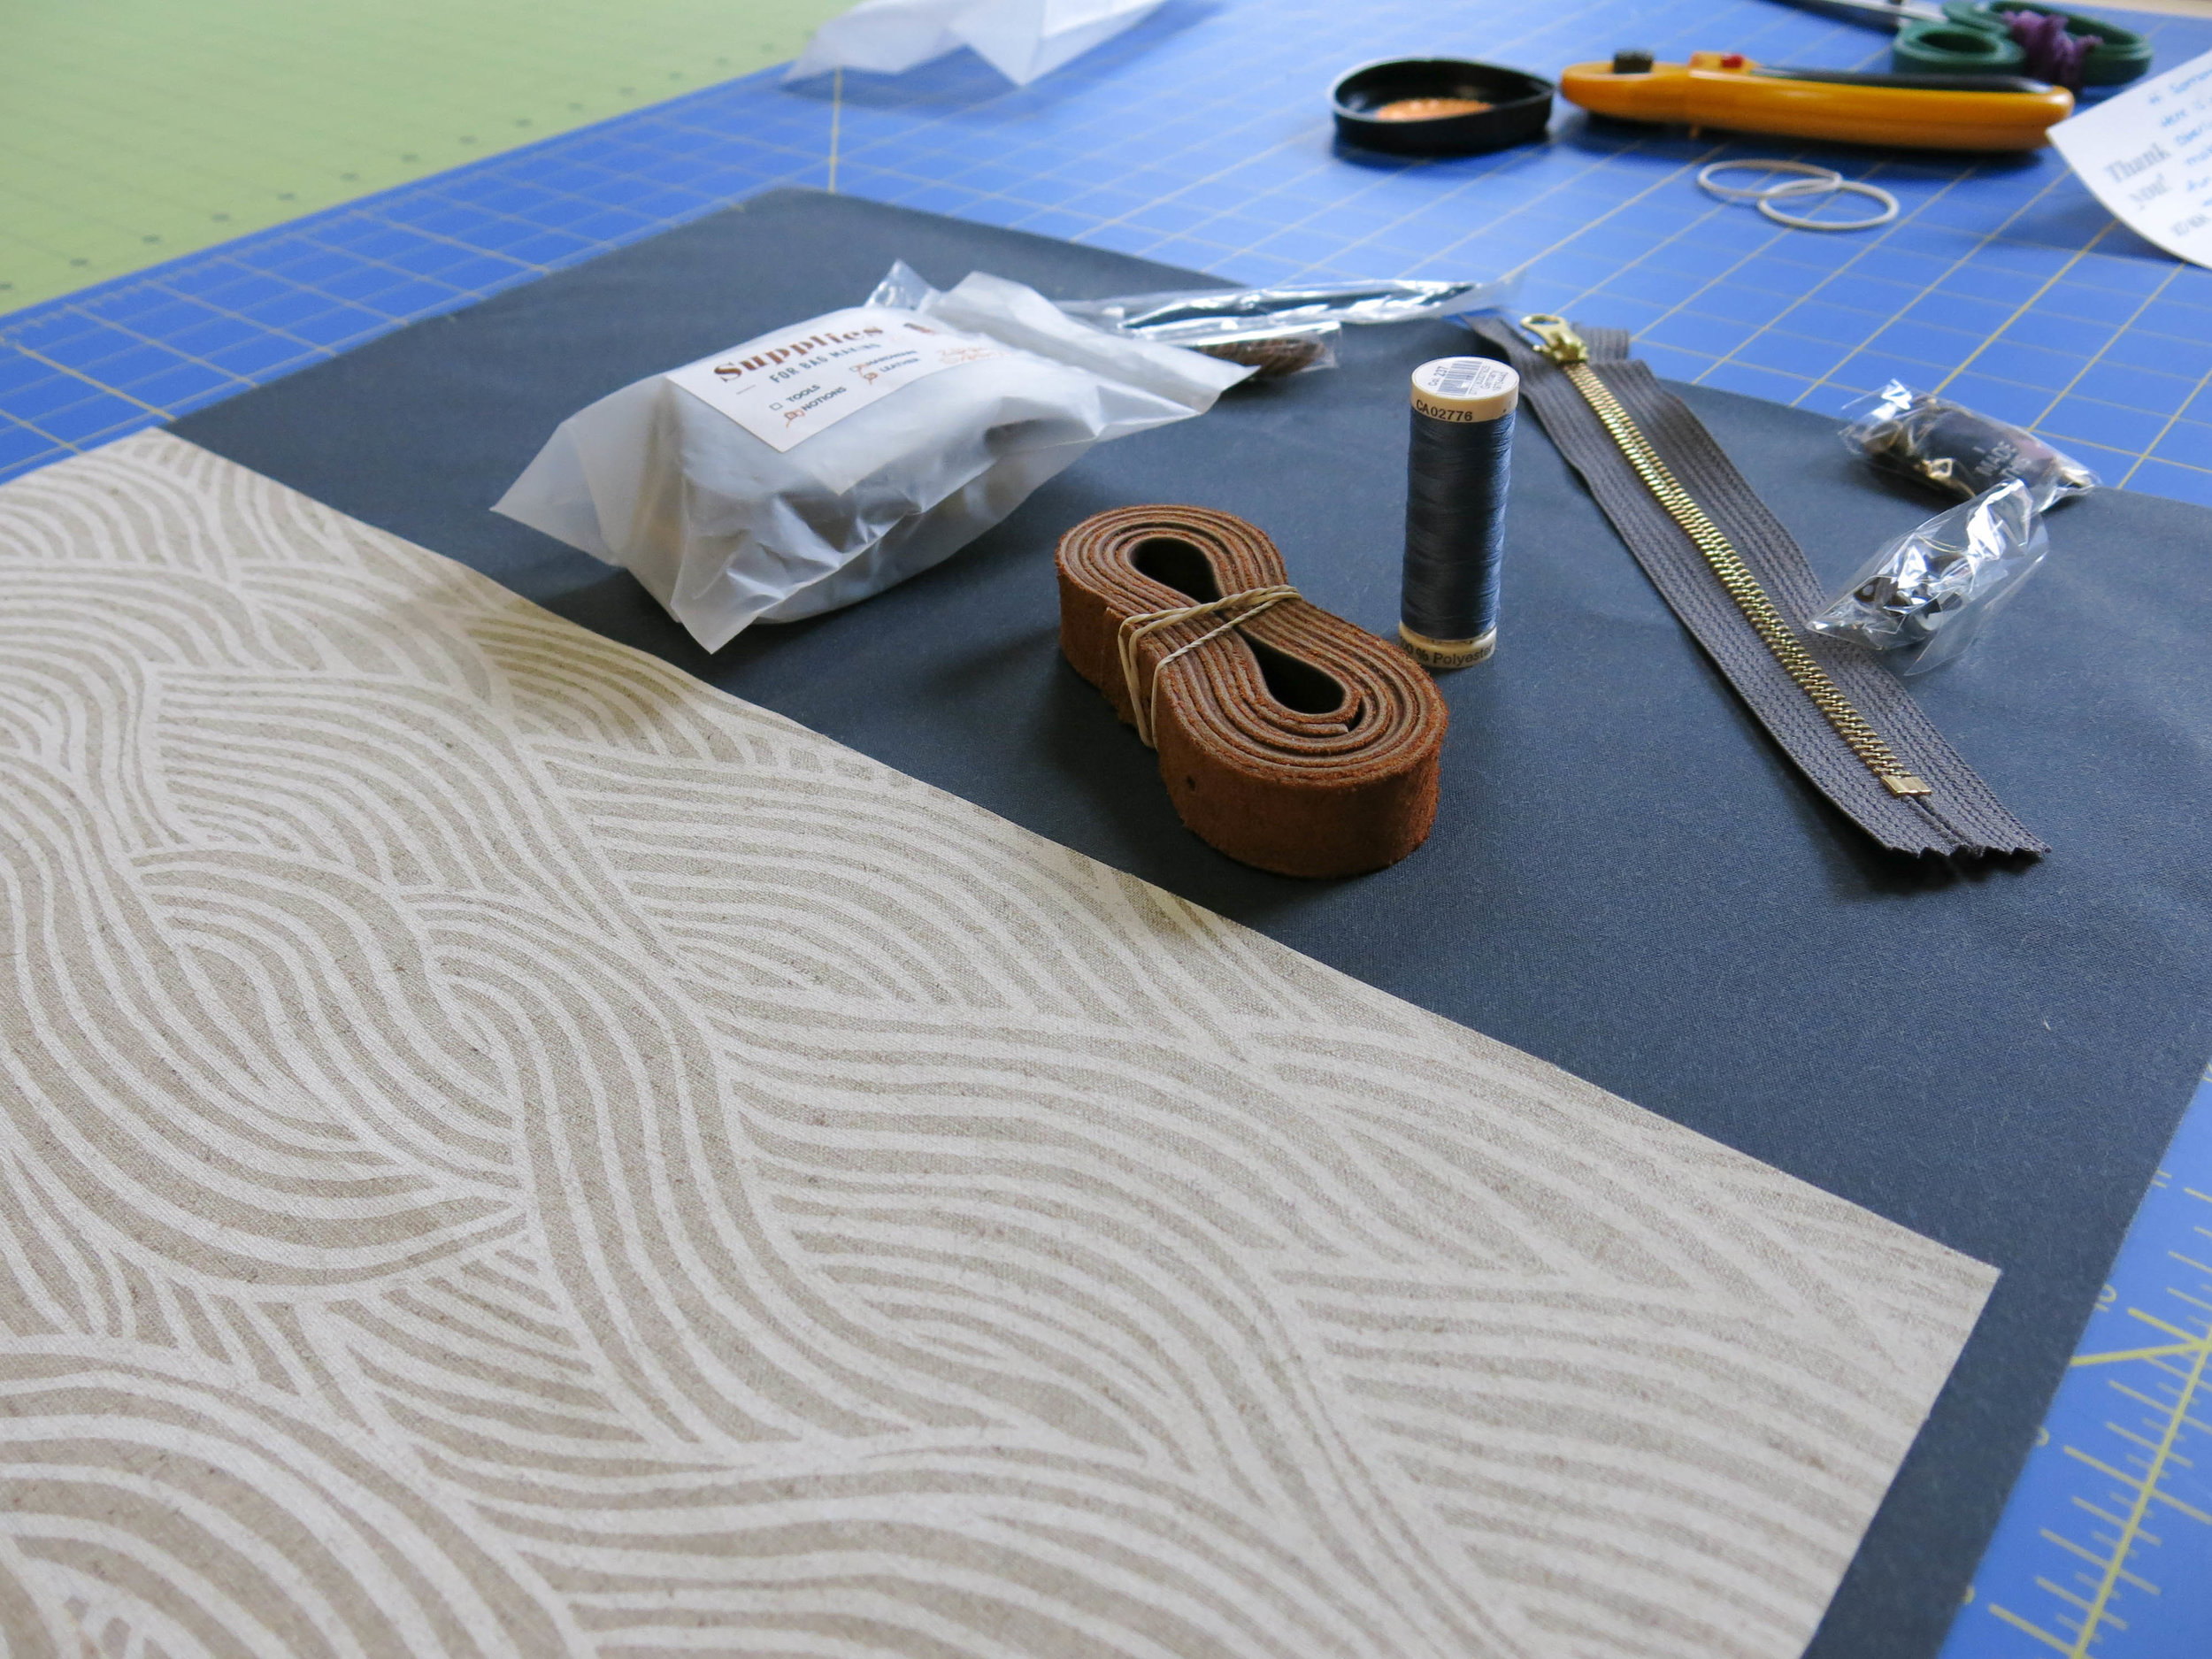 the kit laid out on my cutting table, already cut!